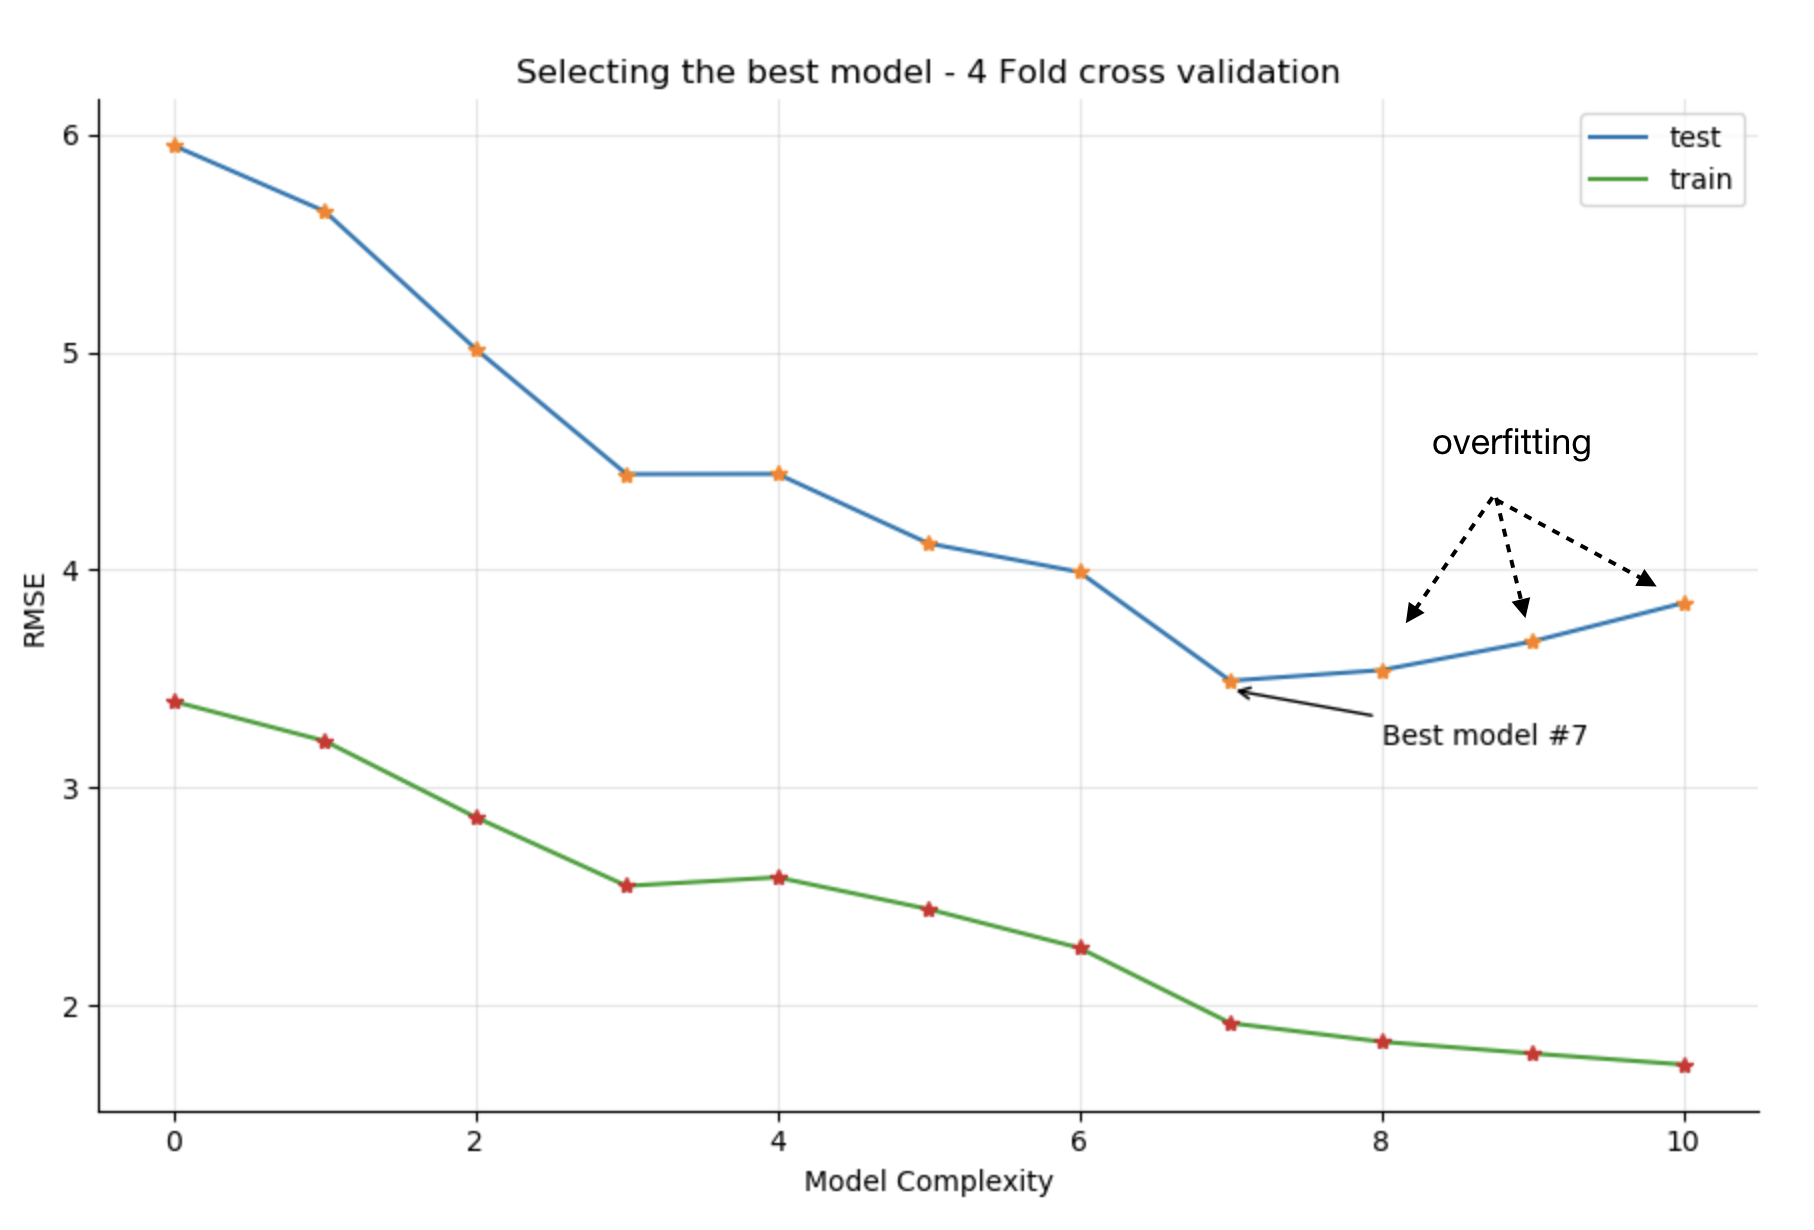 Model selection with K-Fold cross validation K=4